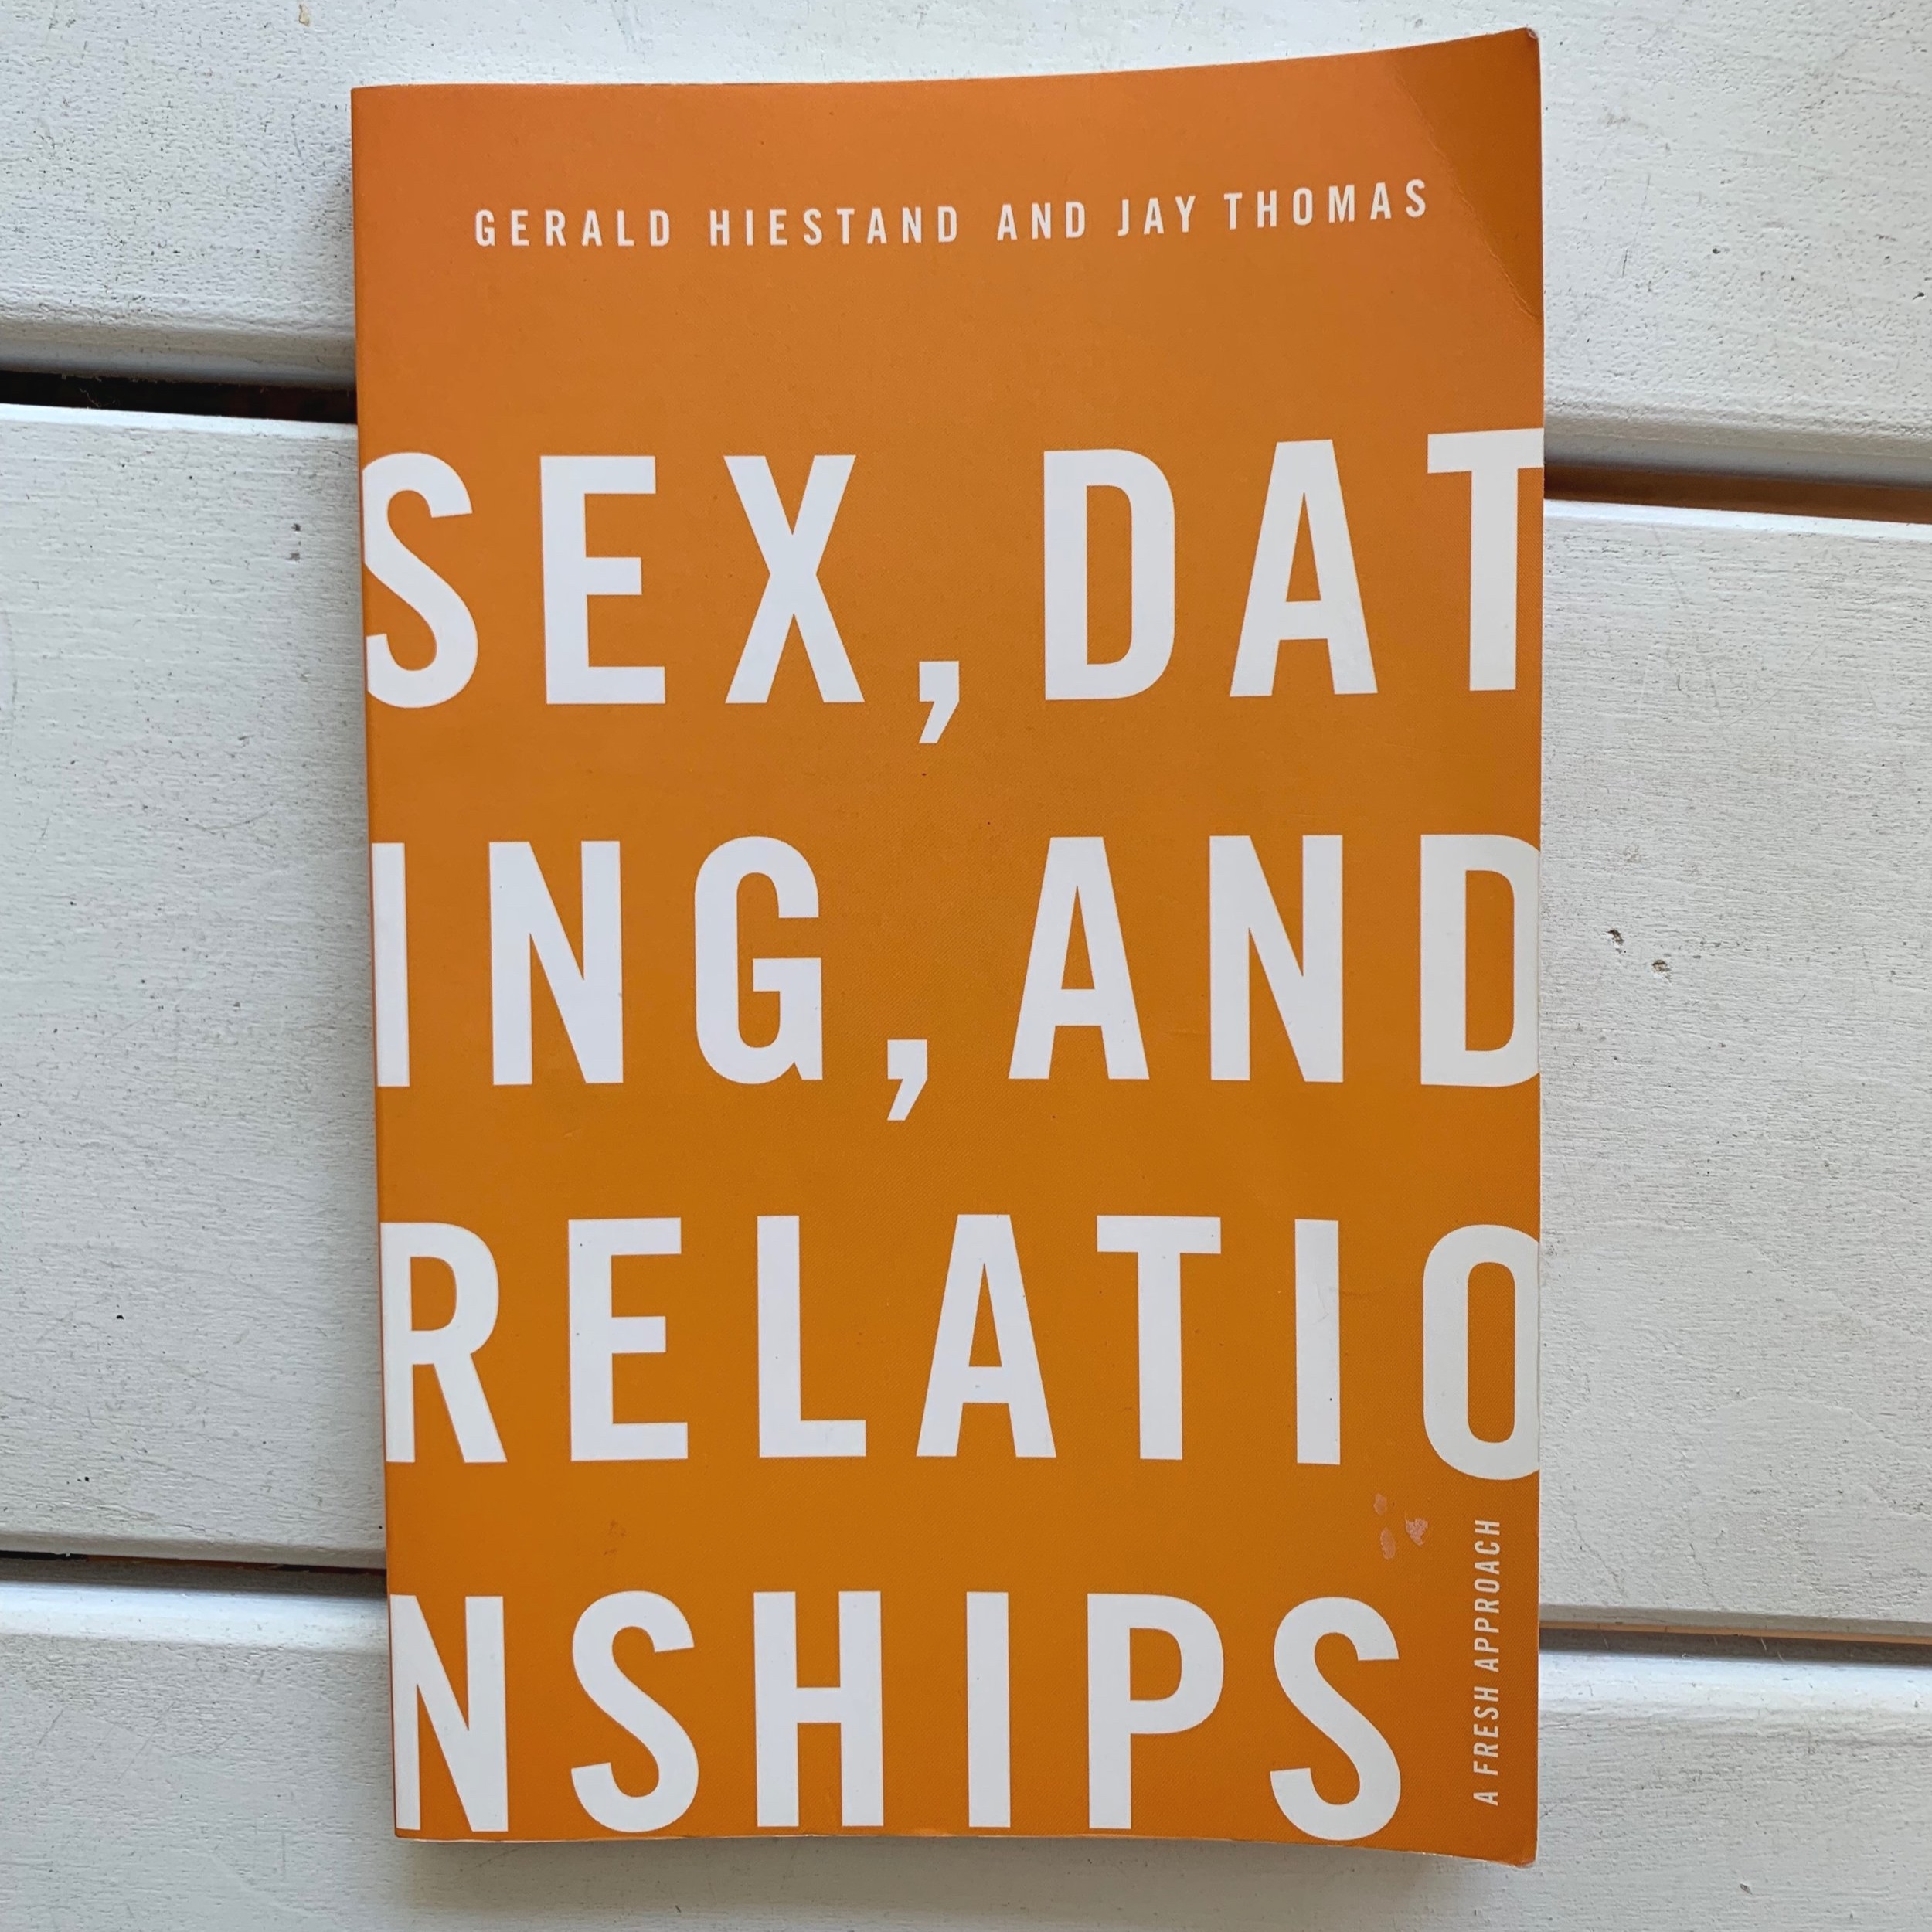 Sex, Dating, and Relationships   Considering the sex-crazed, hook-up based culture we live in- not to mention the ever climbing divorce rate- it's clear that we need a better understanding of sex, dating, and relationships. Pastors Gerald Hiestand and Jay Thomas give us a paradigm-shifting view of purity and relationships- a view that accounts for biblical evidence and helps us guard against unnecessary heartache.  (summery blurb from back of book)